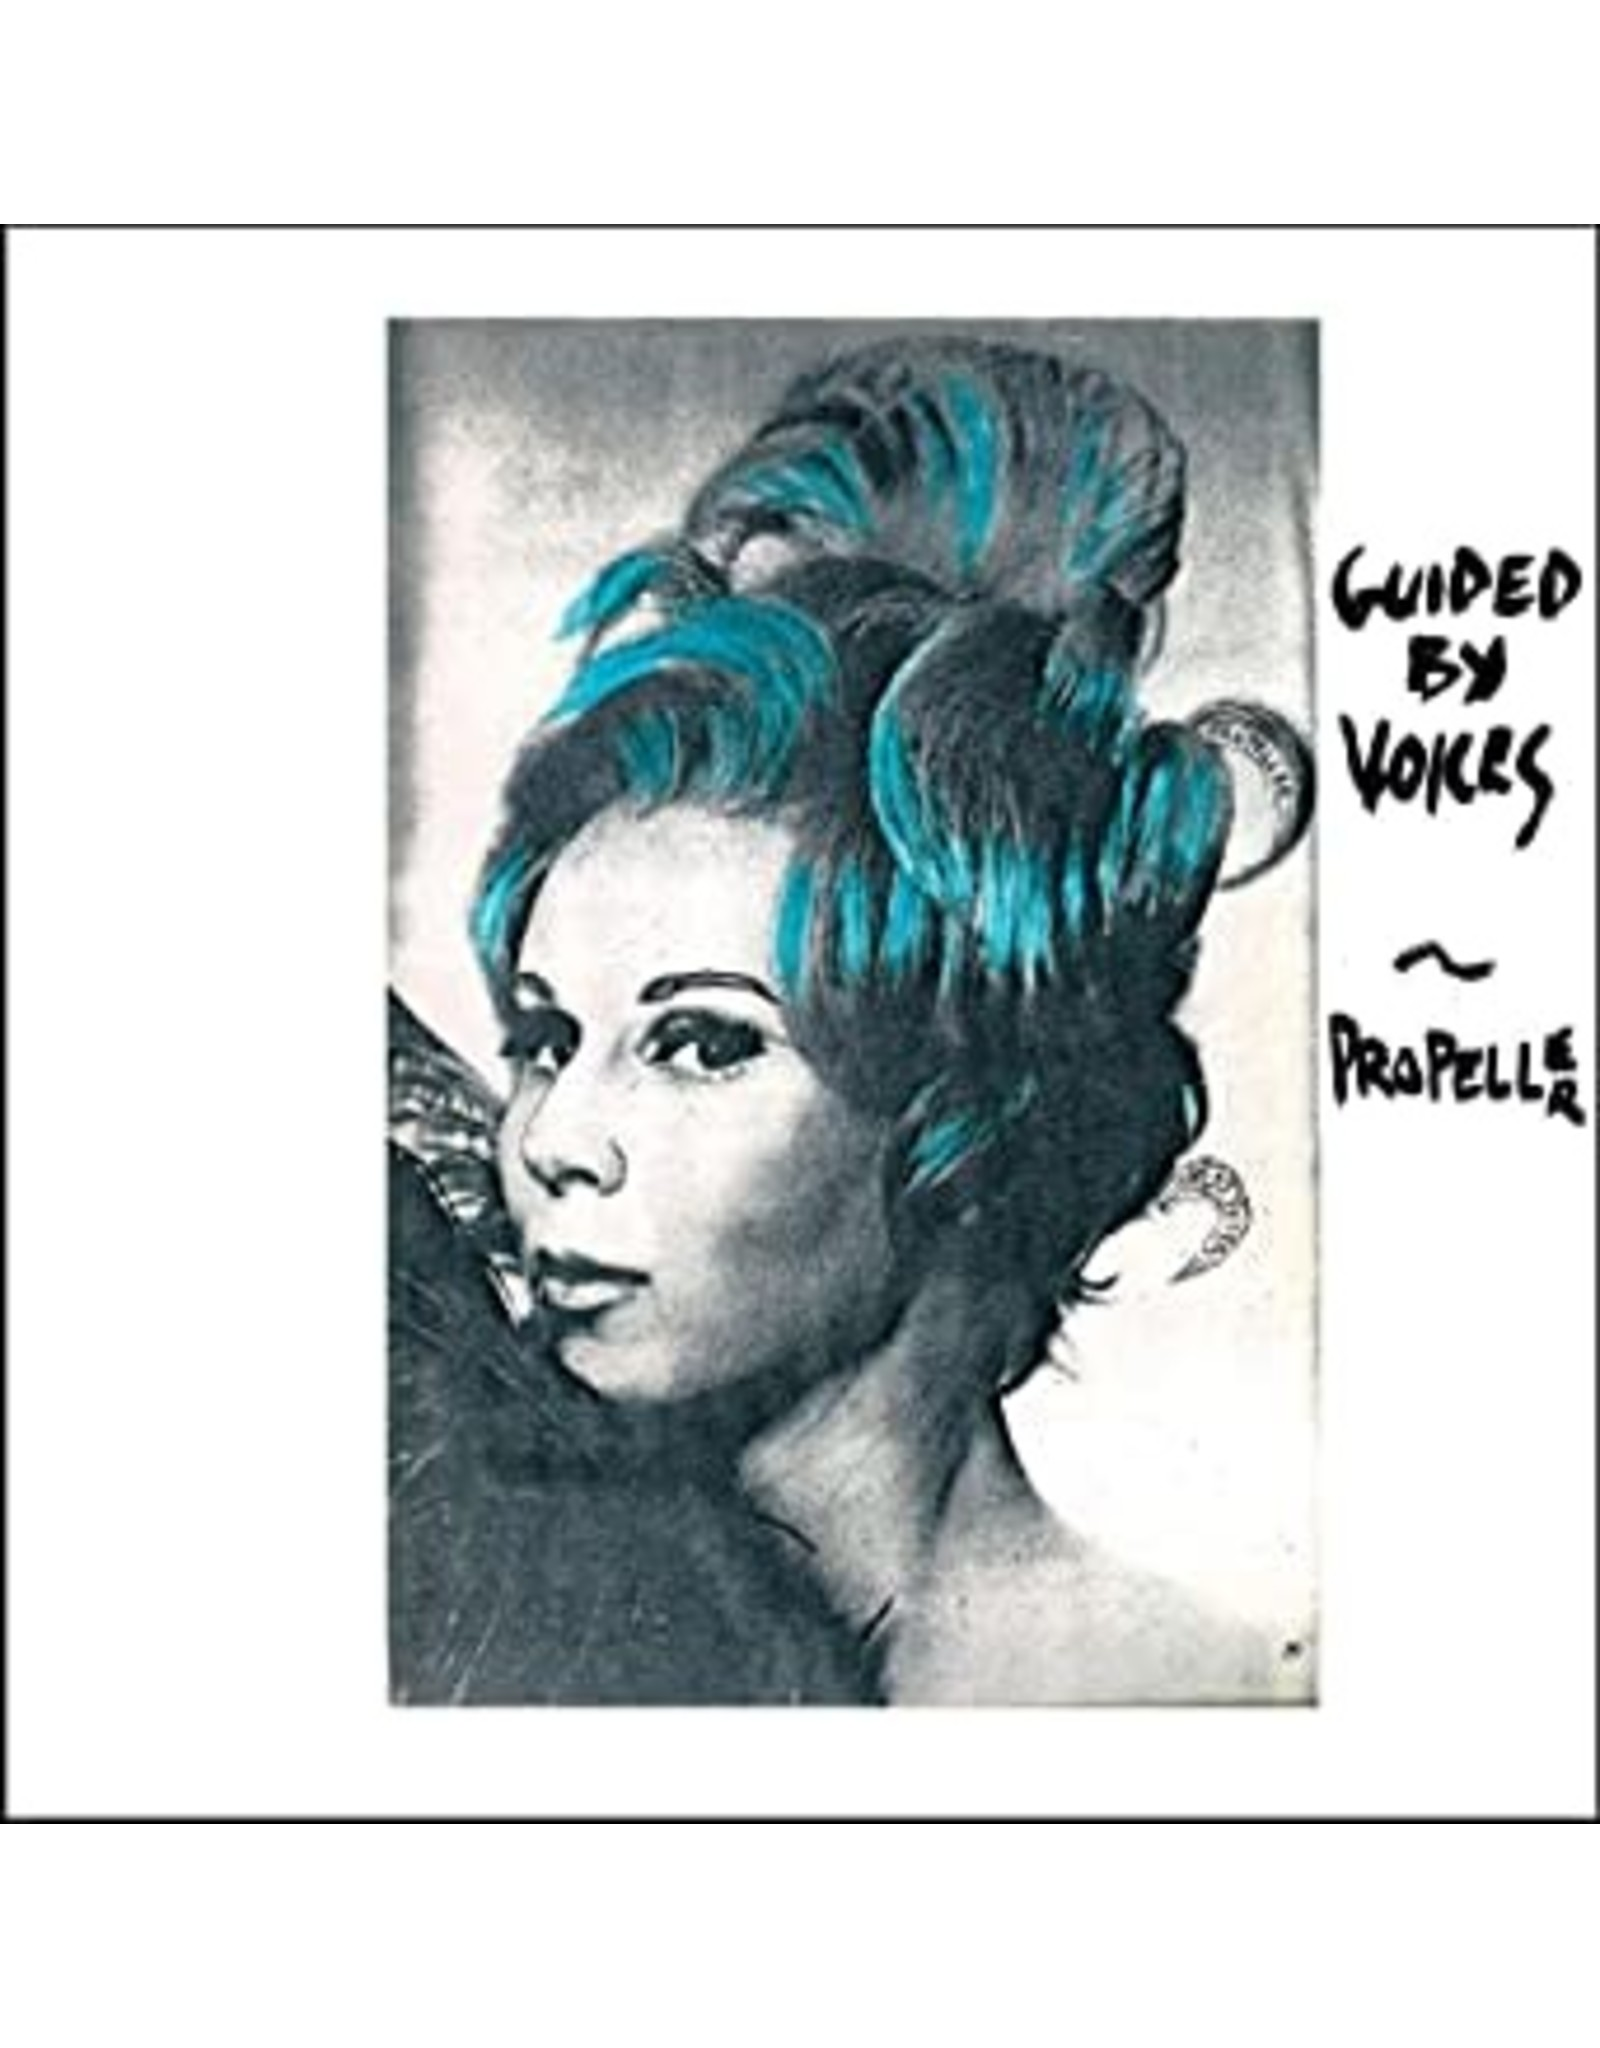 Guided By Voices - Propeller LP